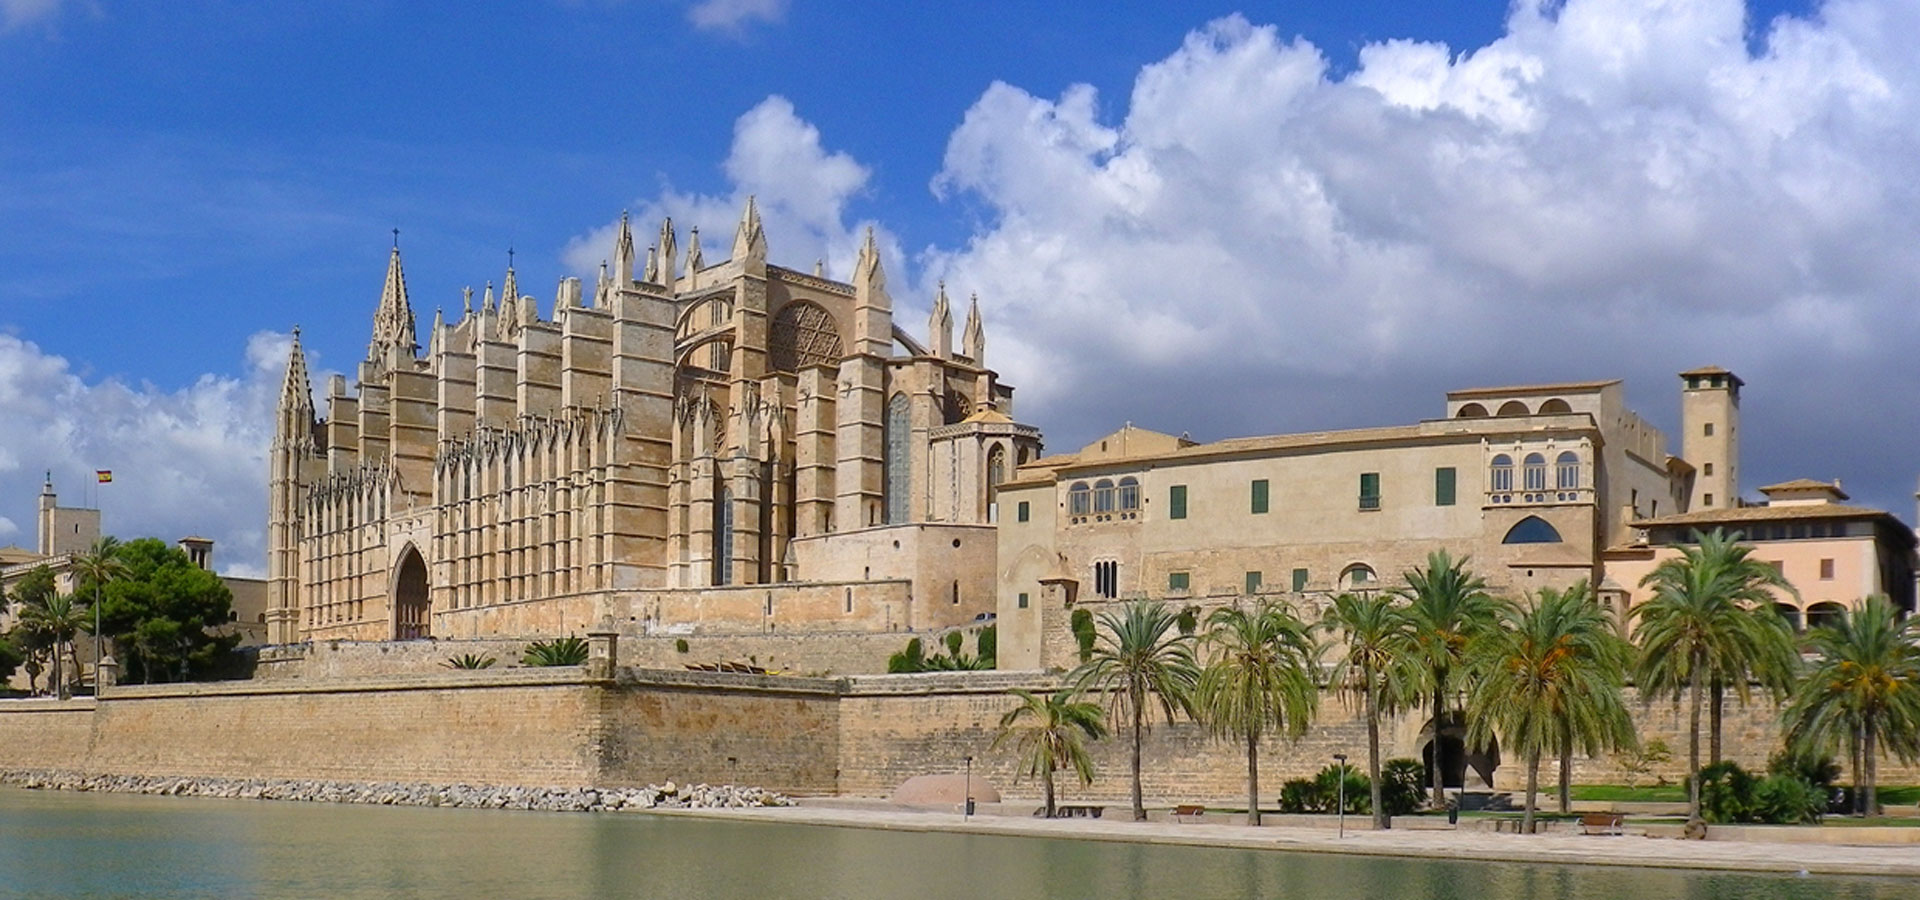 Palma Old Town property market is interlaced with historical budilings and churches.